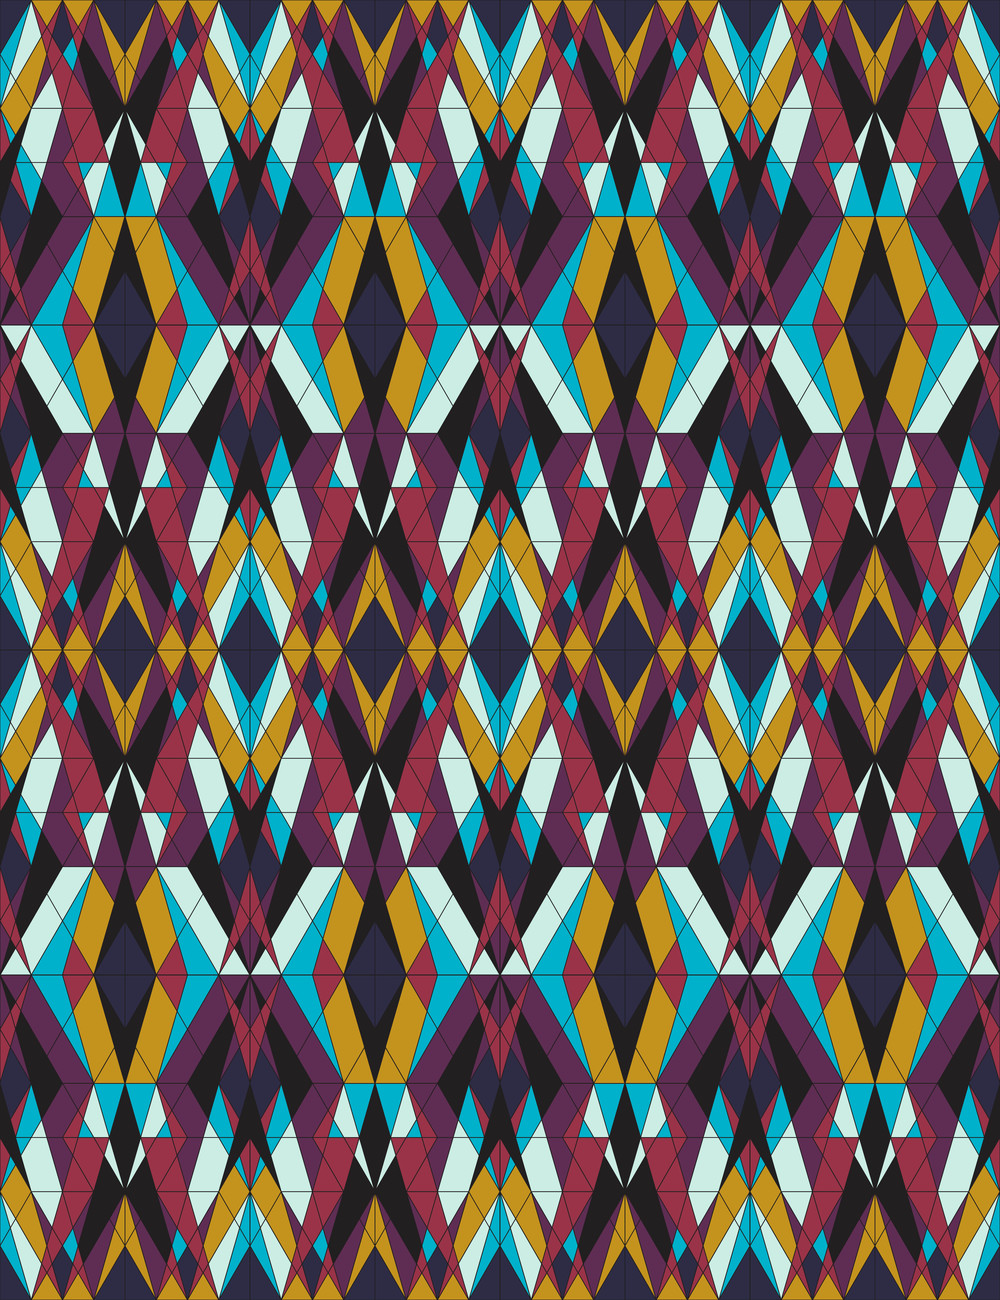 kaleidoscope color 3.jpg